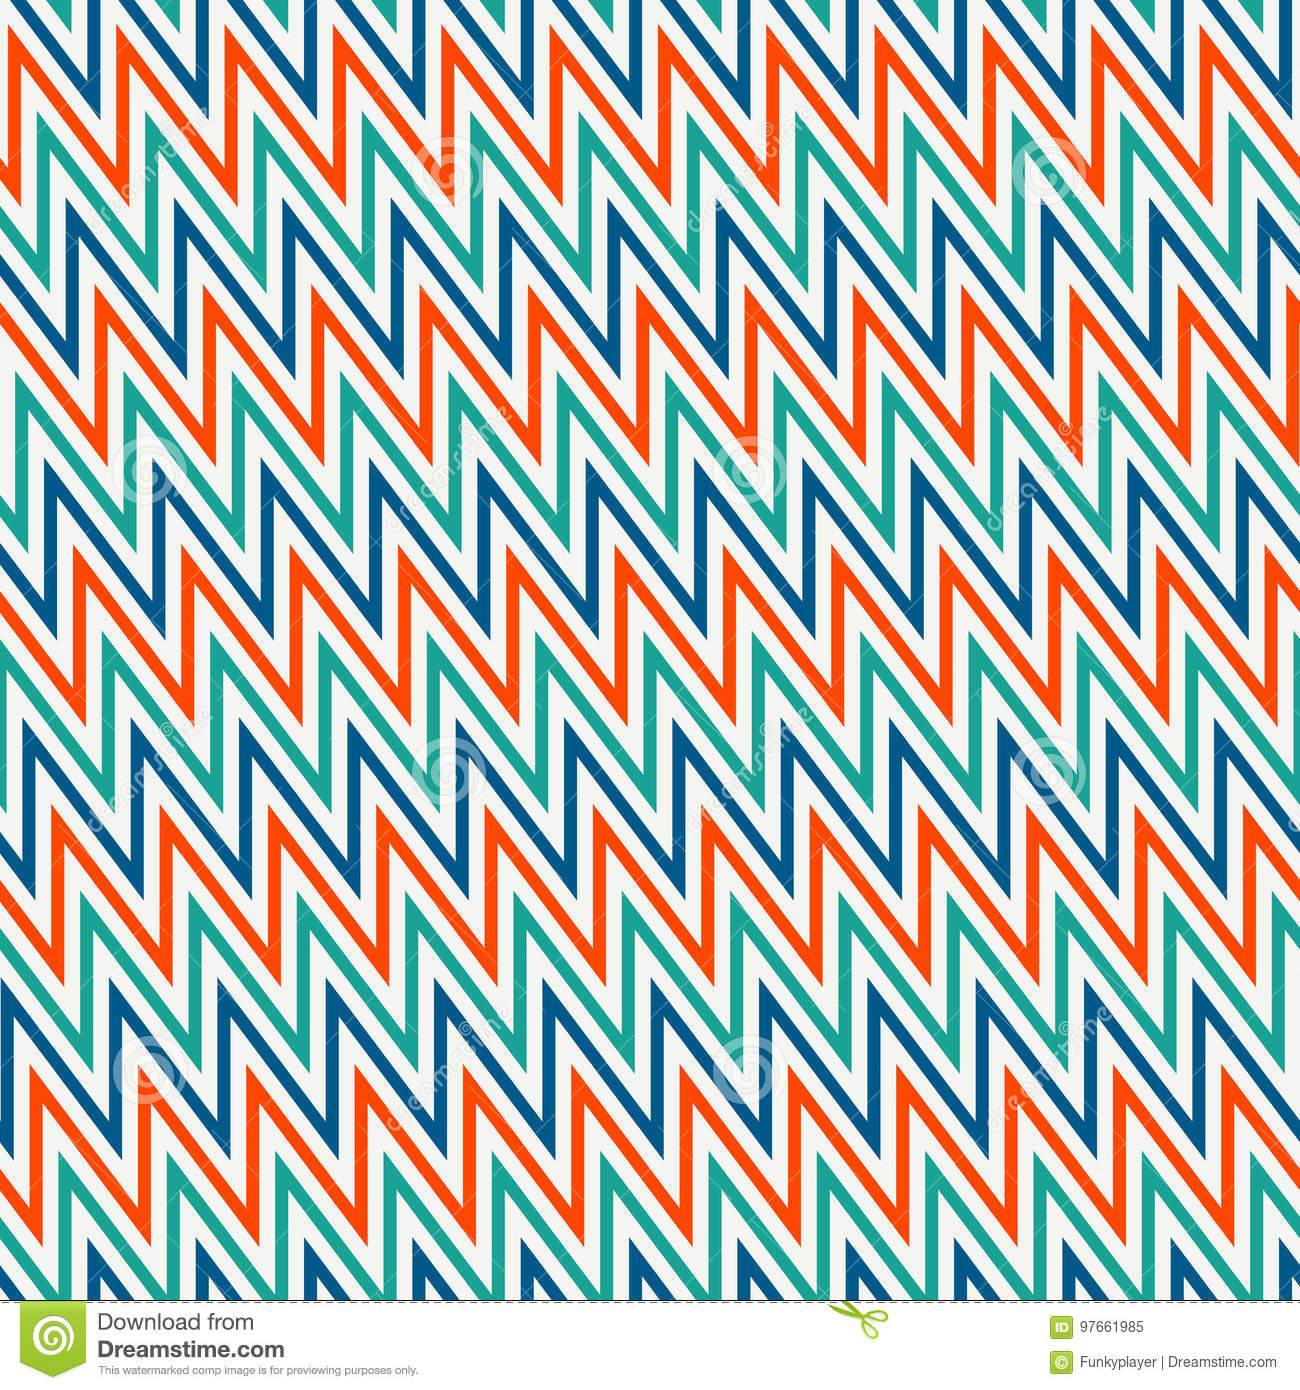 chevron diagonal stripes background  seamless pattern with